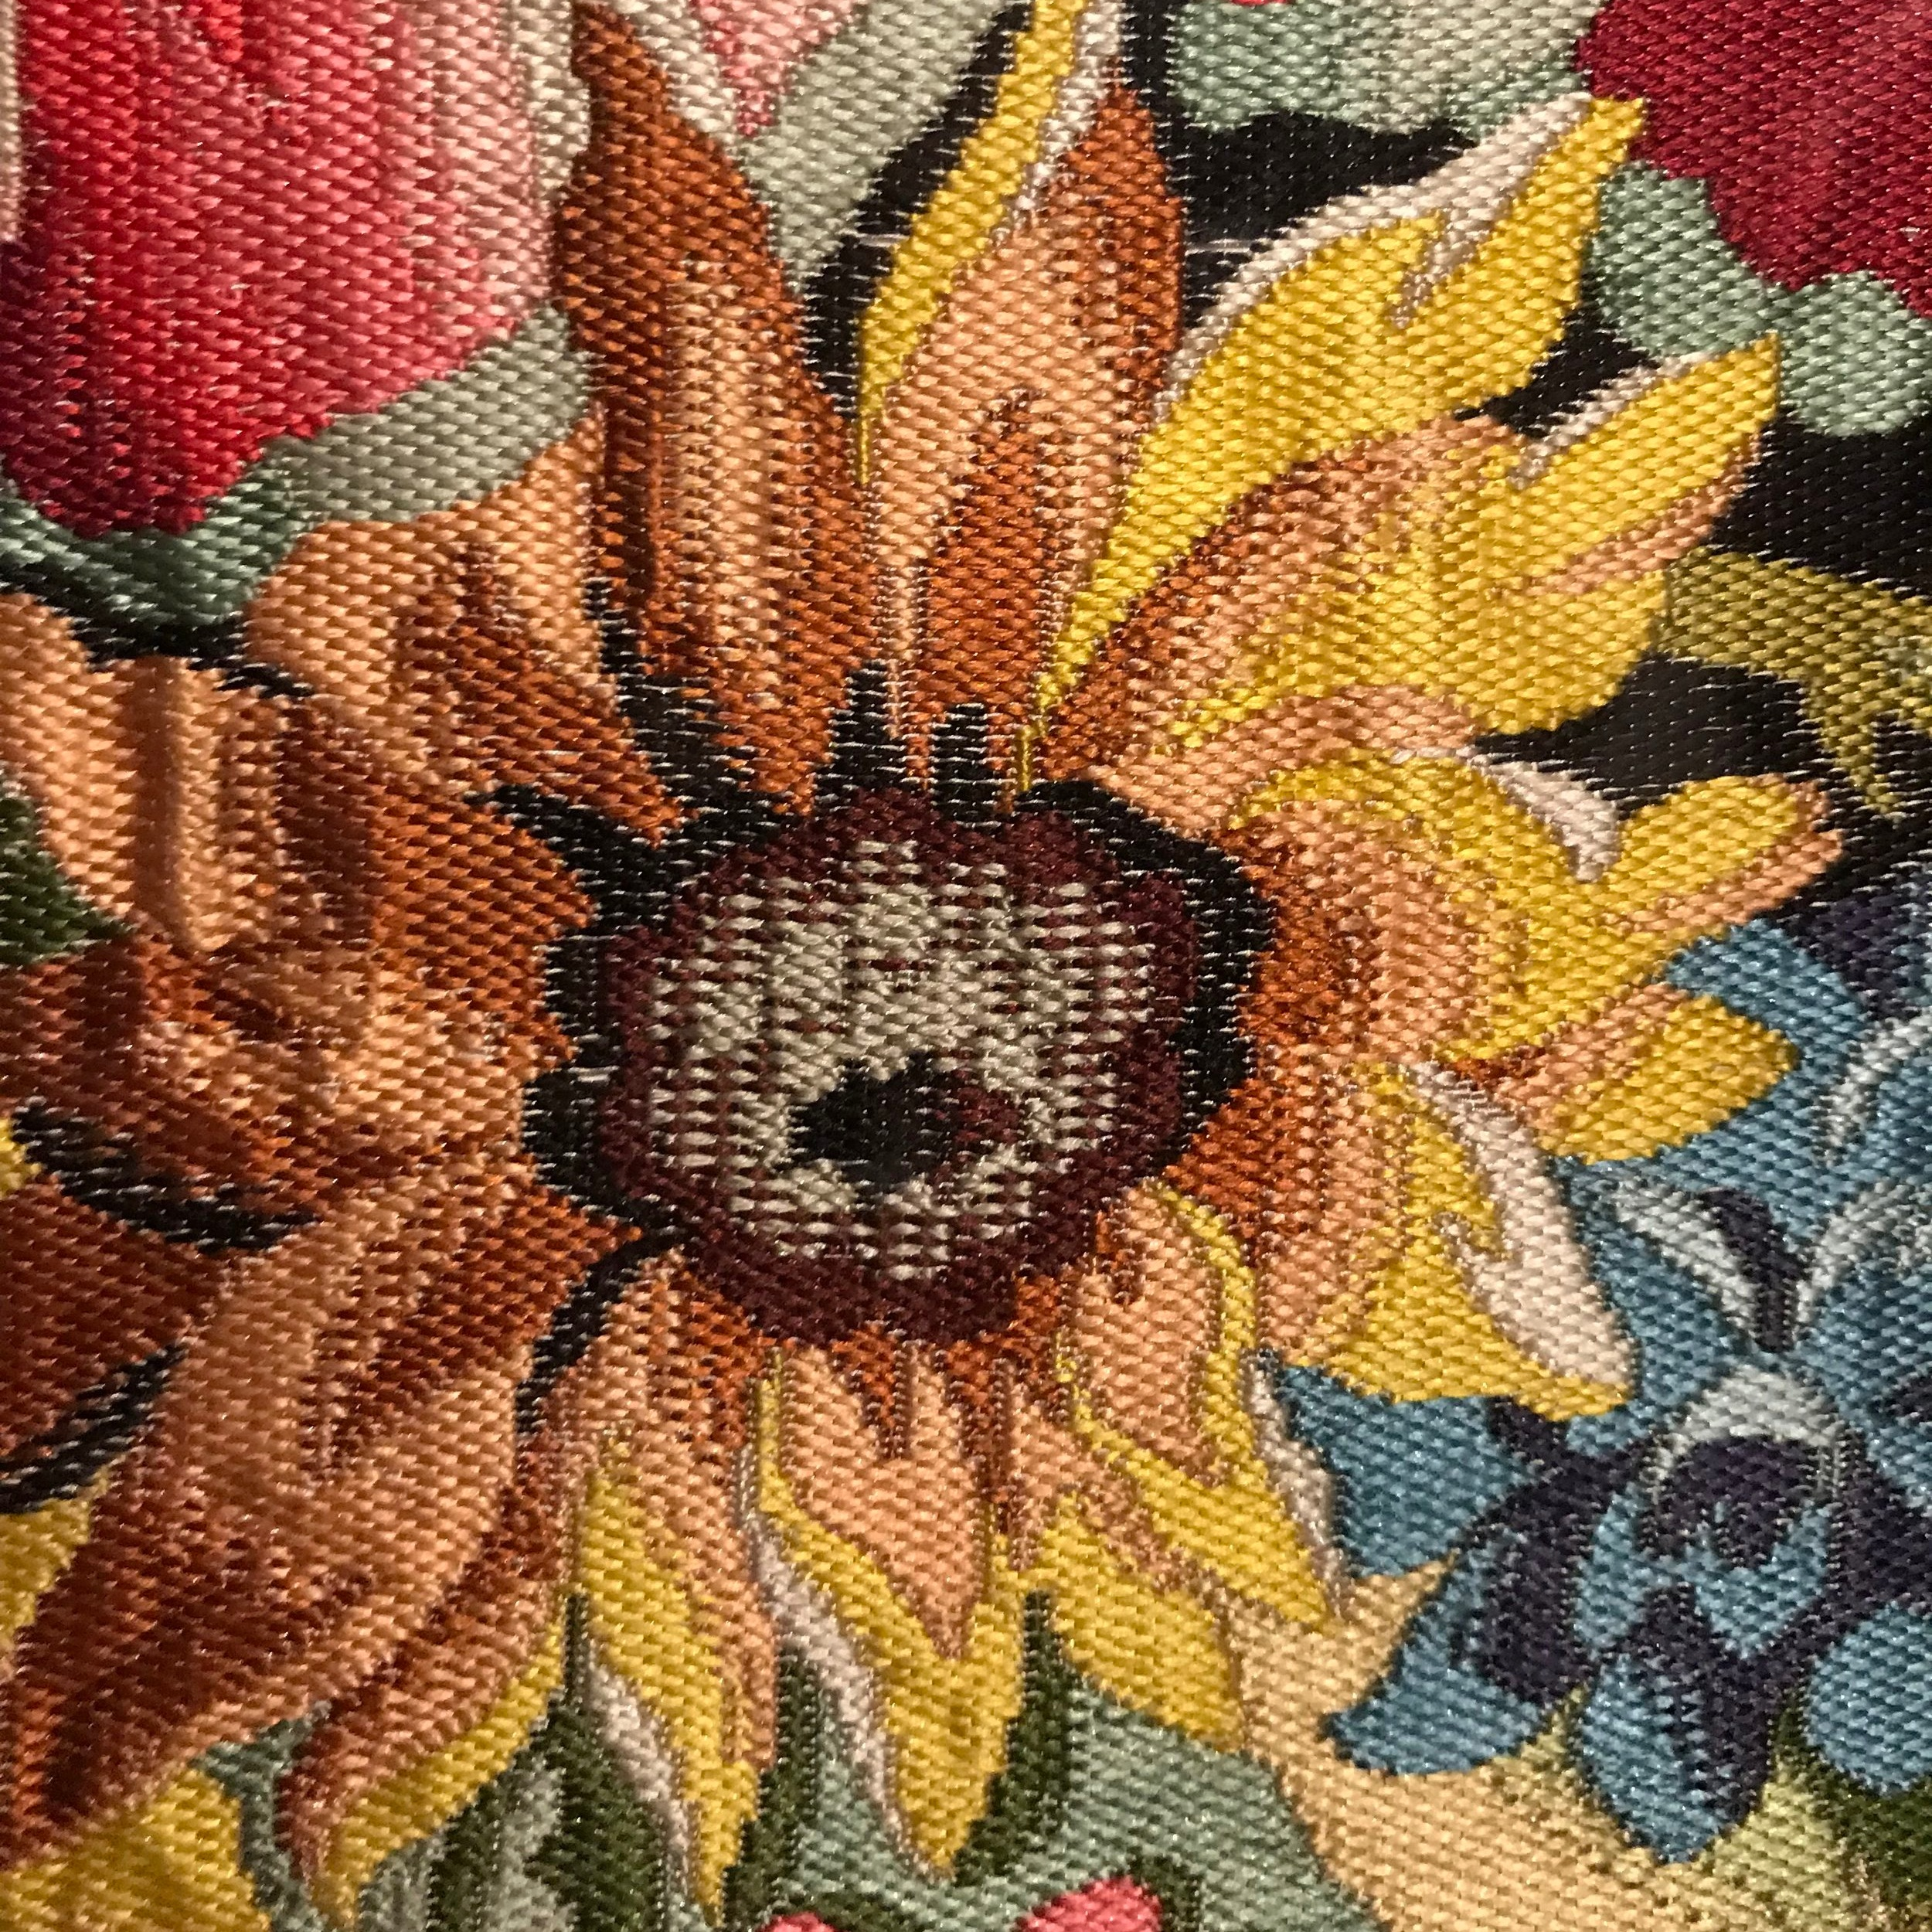 Stunning embroidery from Museé des Tissus - scroll down to see some more stunning pictures